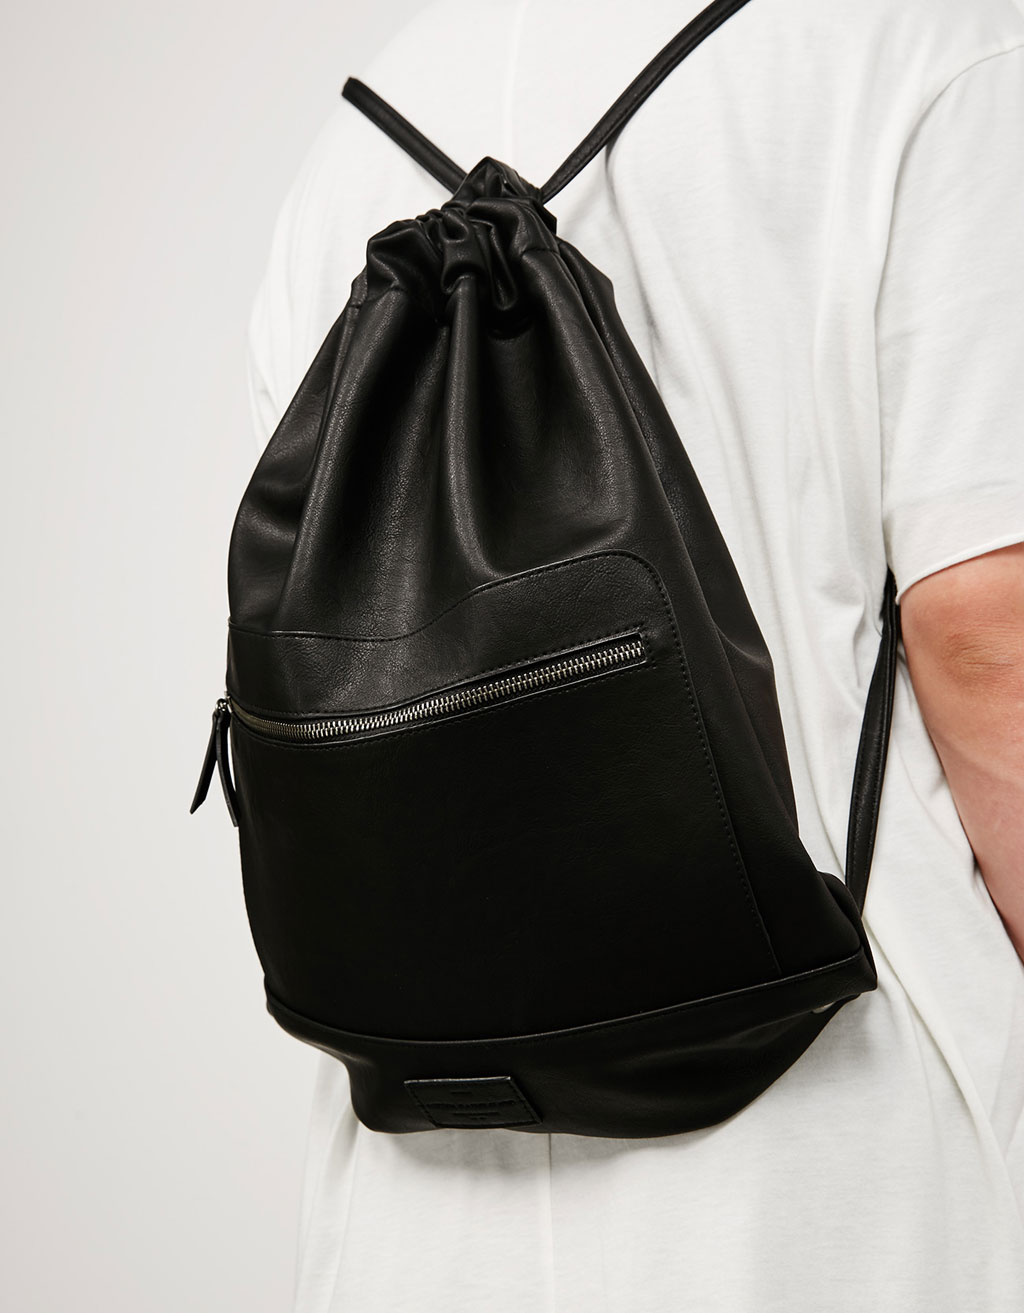 'Drawsting Metal Zipper' backpack